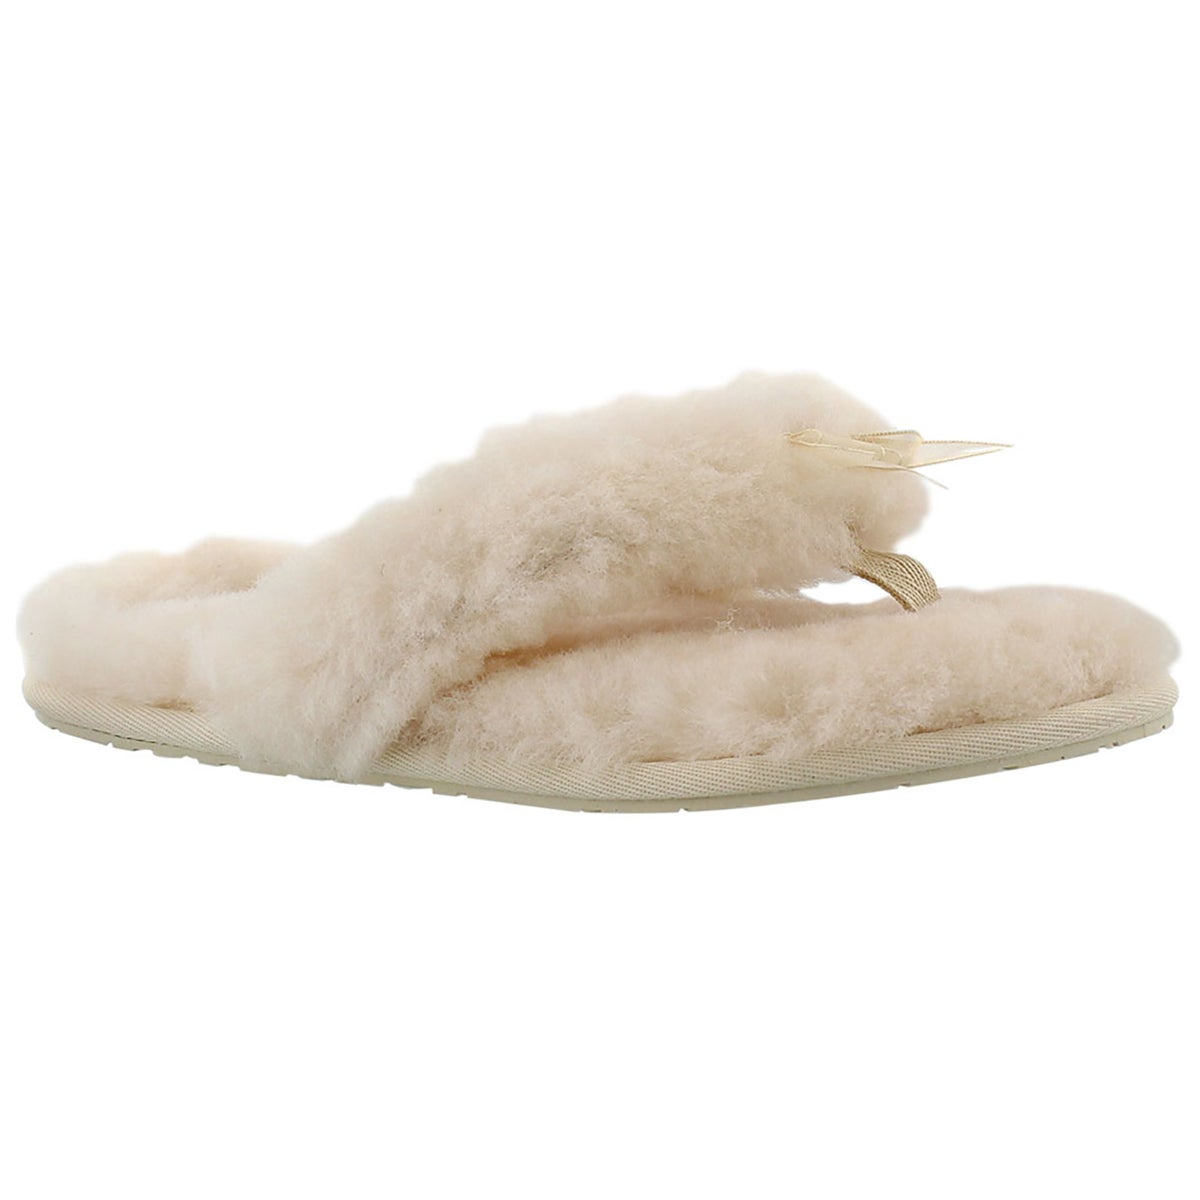 Women's FLUFF FLIP FLOP II naturl sheepskin thongs